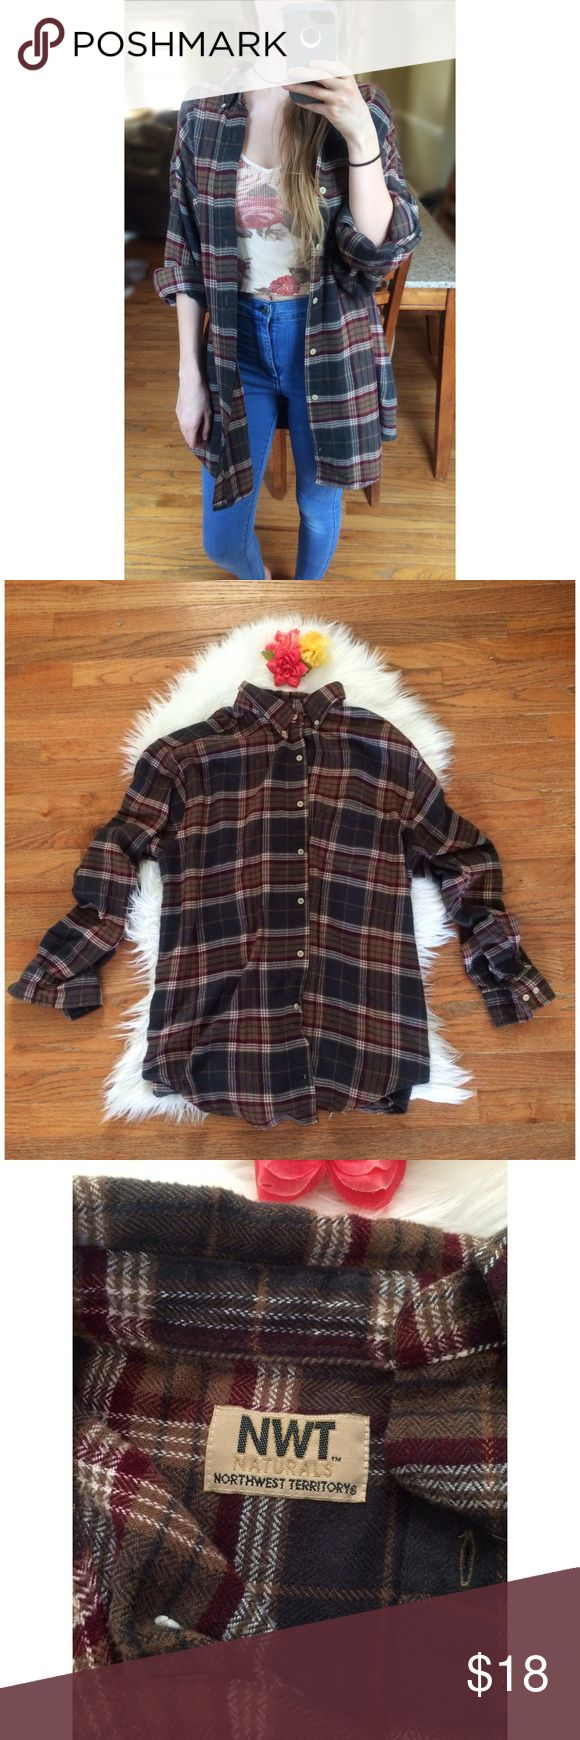 90's Vintage Soft Oversized Flannel 🍂 Awesome vintage 90's flannel by Northwest Territories! Super super soft 100% acrylic material in the best deep neutral plaid shades. This is a staple for anyone's closet, perfect to throw on over anything for an extra cozy touch! In awesome vintage condition. Men's size XL, fits a variety of ladies sizes! Seen on a size xs, 5'2 height :)  Measurements (buttoned)- Total Length (top of shoulder to bottom hem)- 31 inches  Bust- 21 inches flat across…